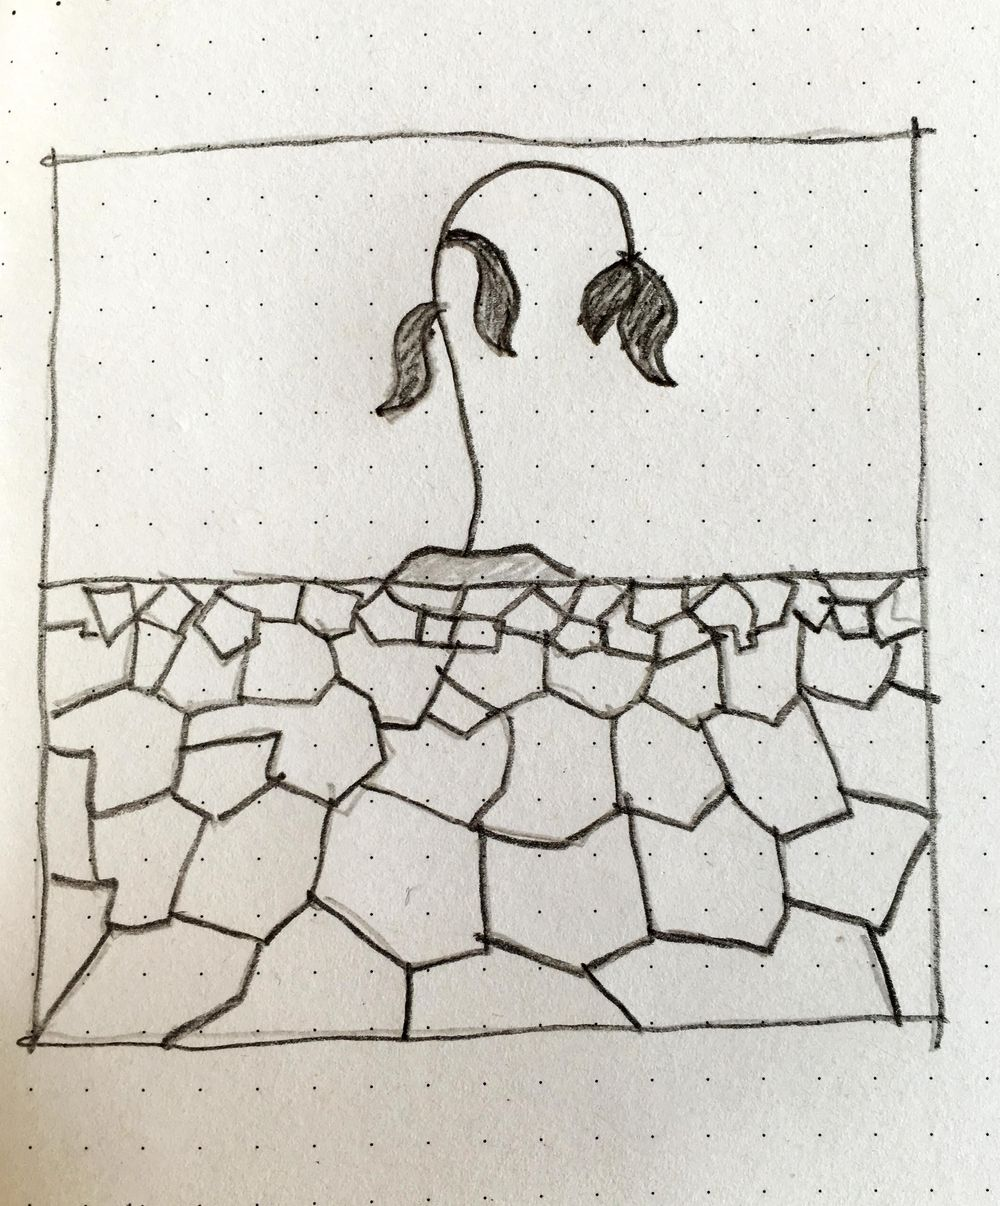 Conserve Water - image 3 - student project